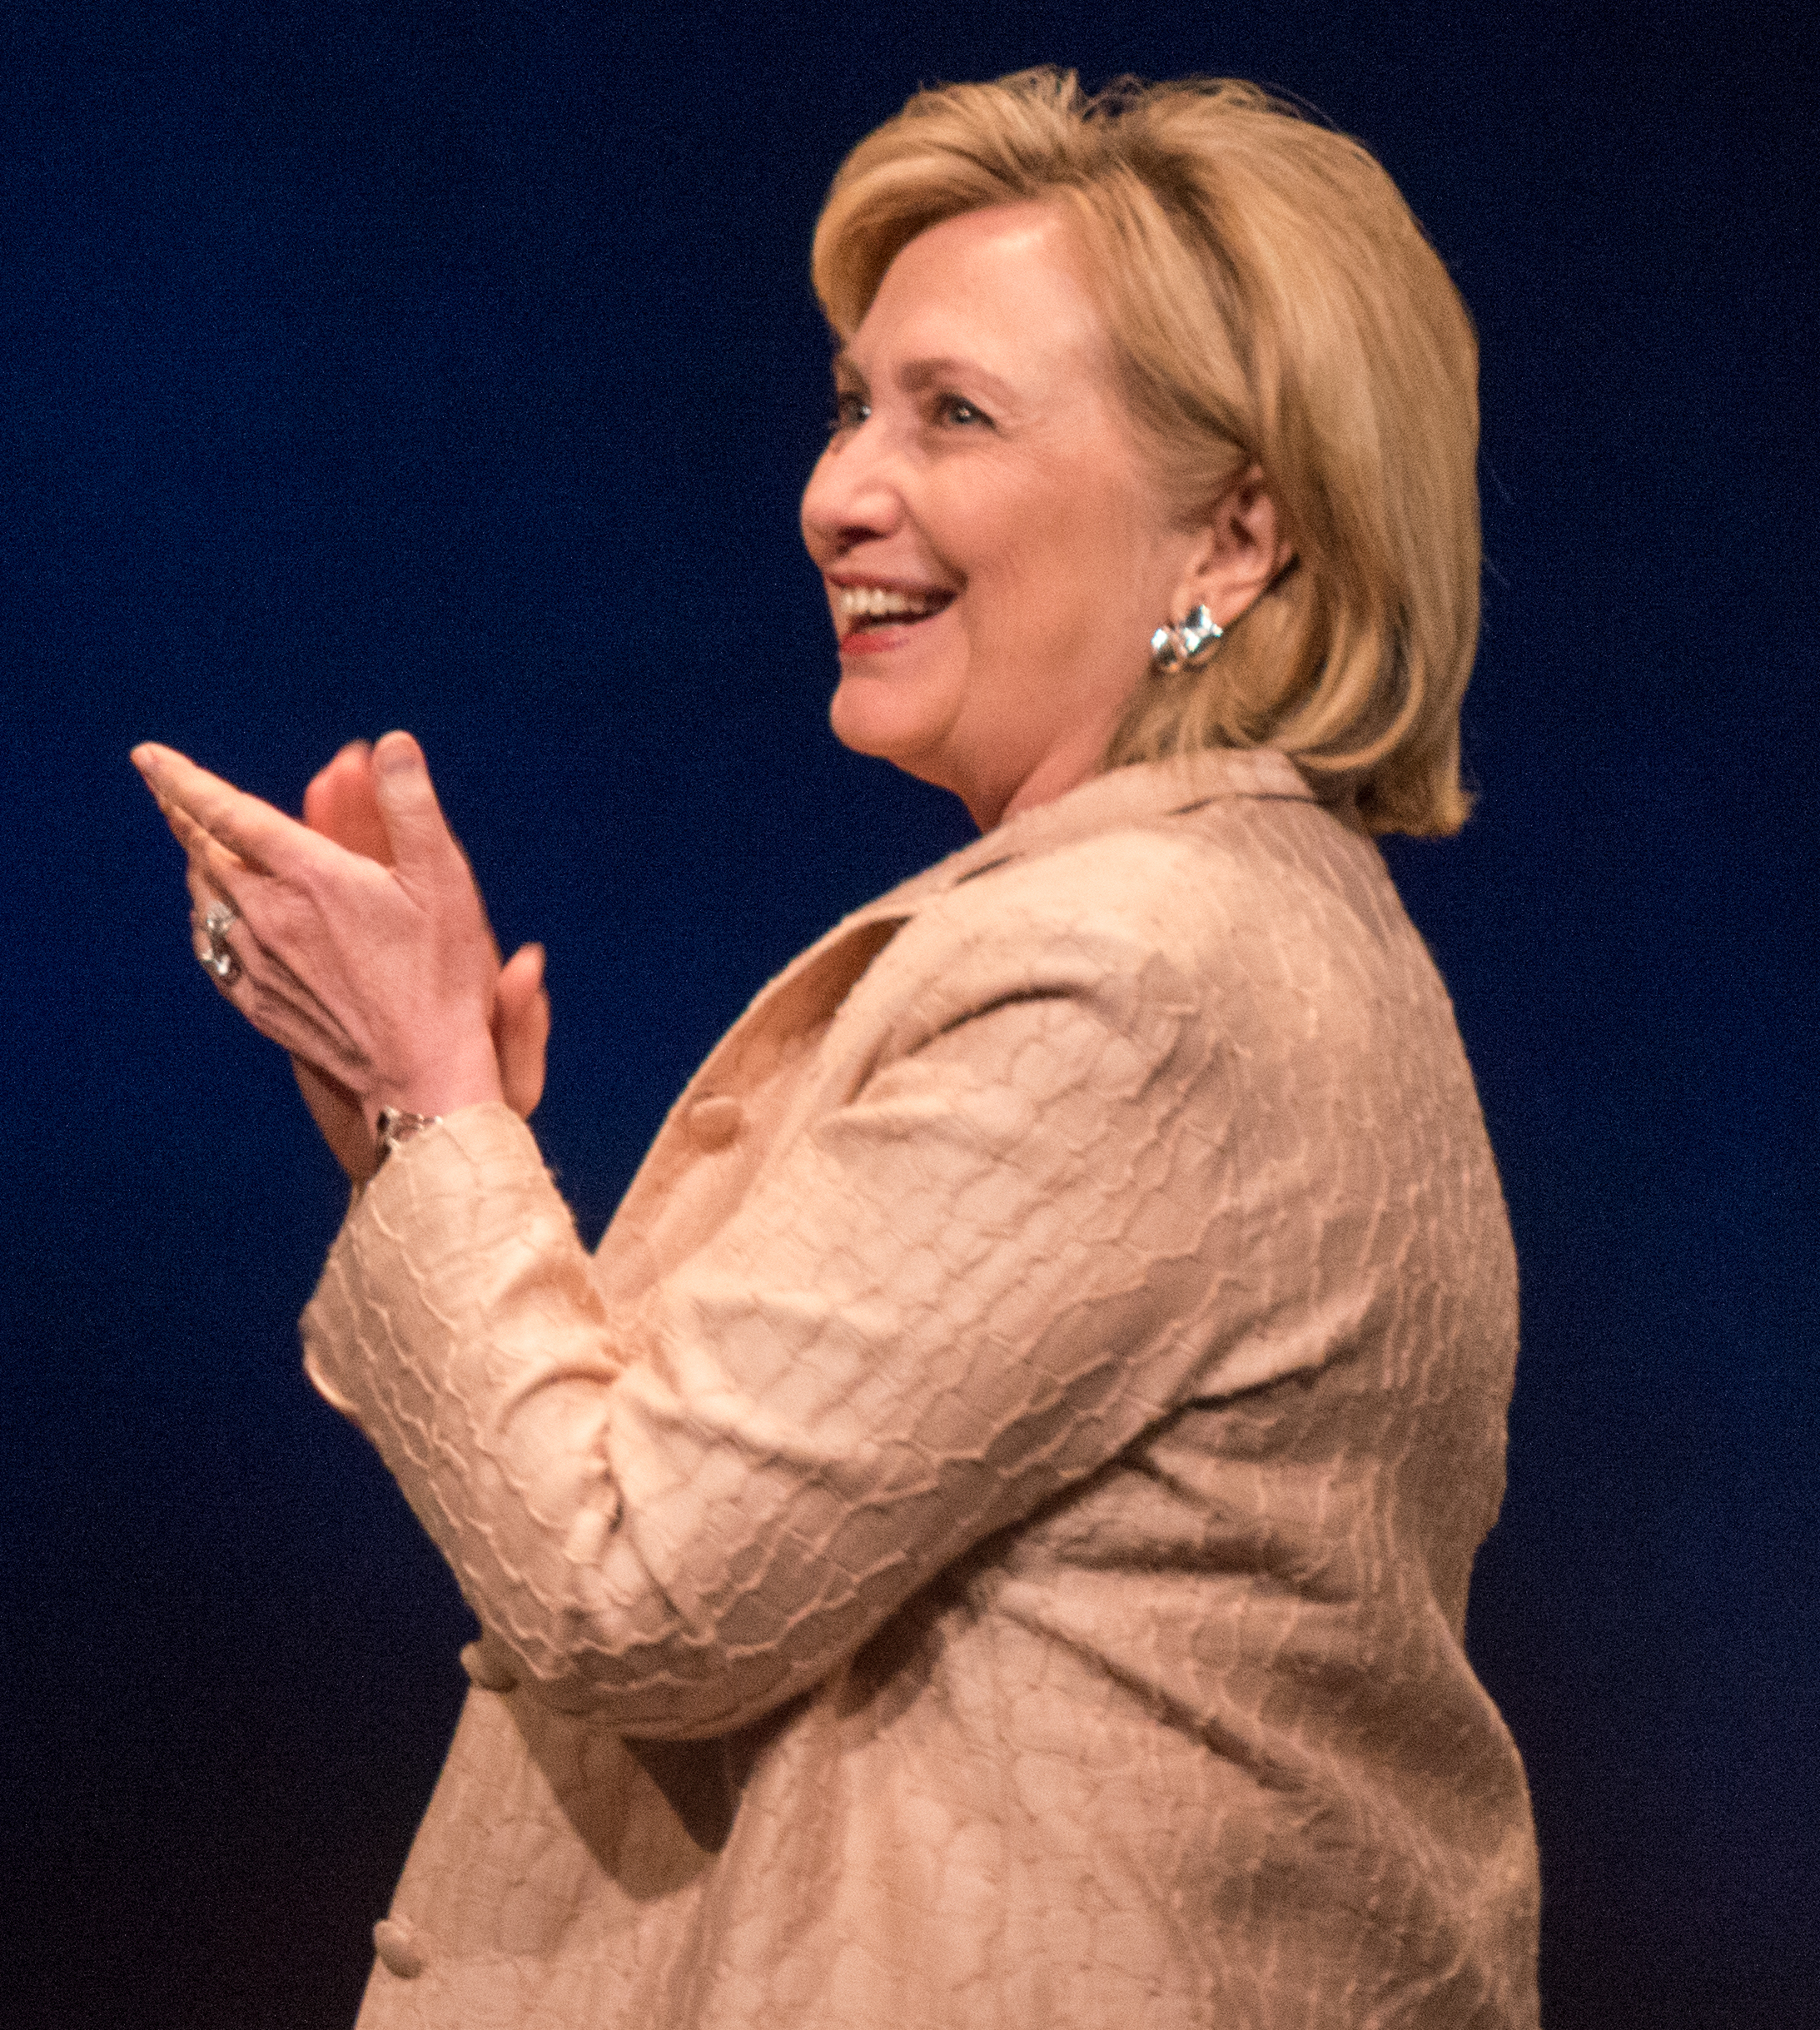 Hilary Clinton in profile clapping